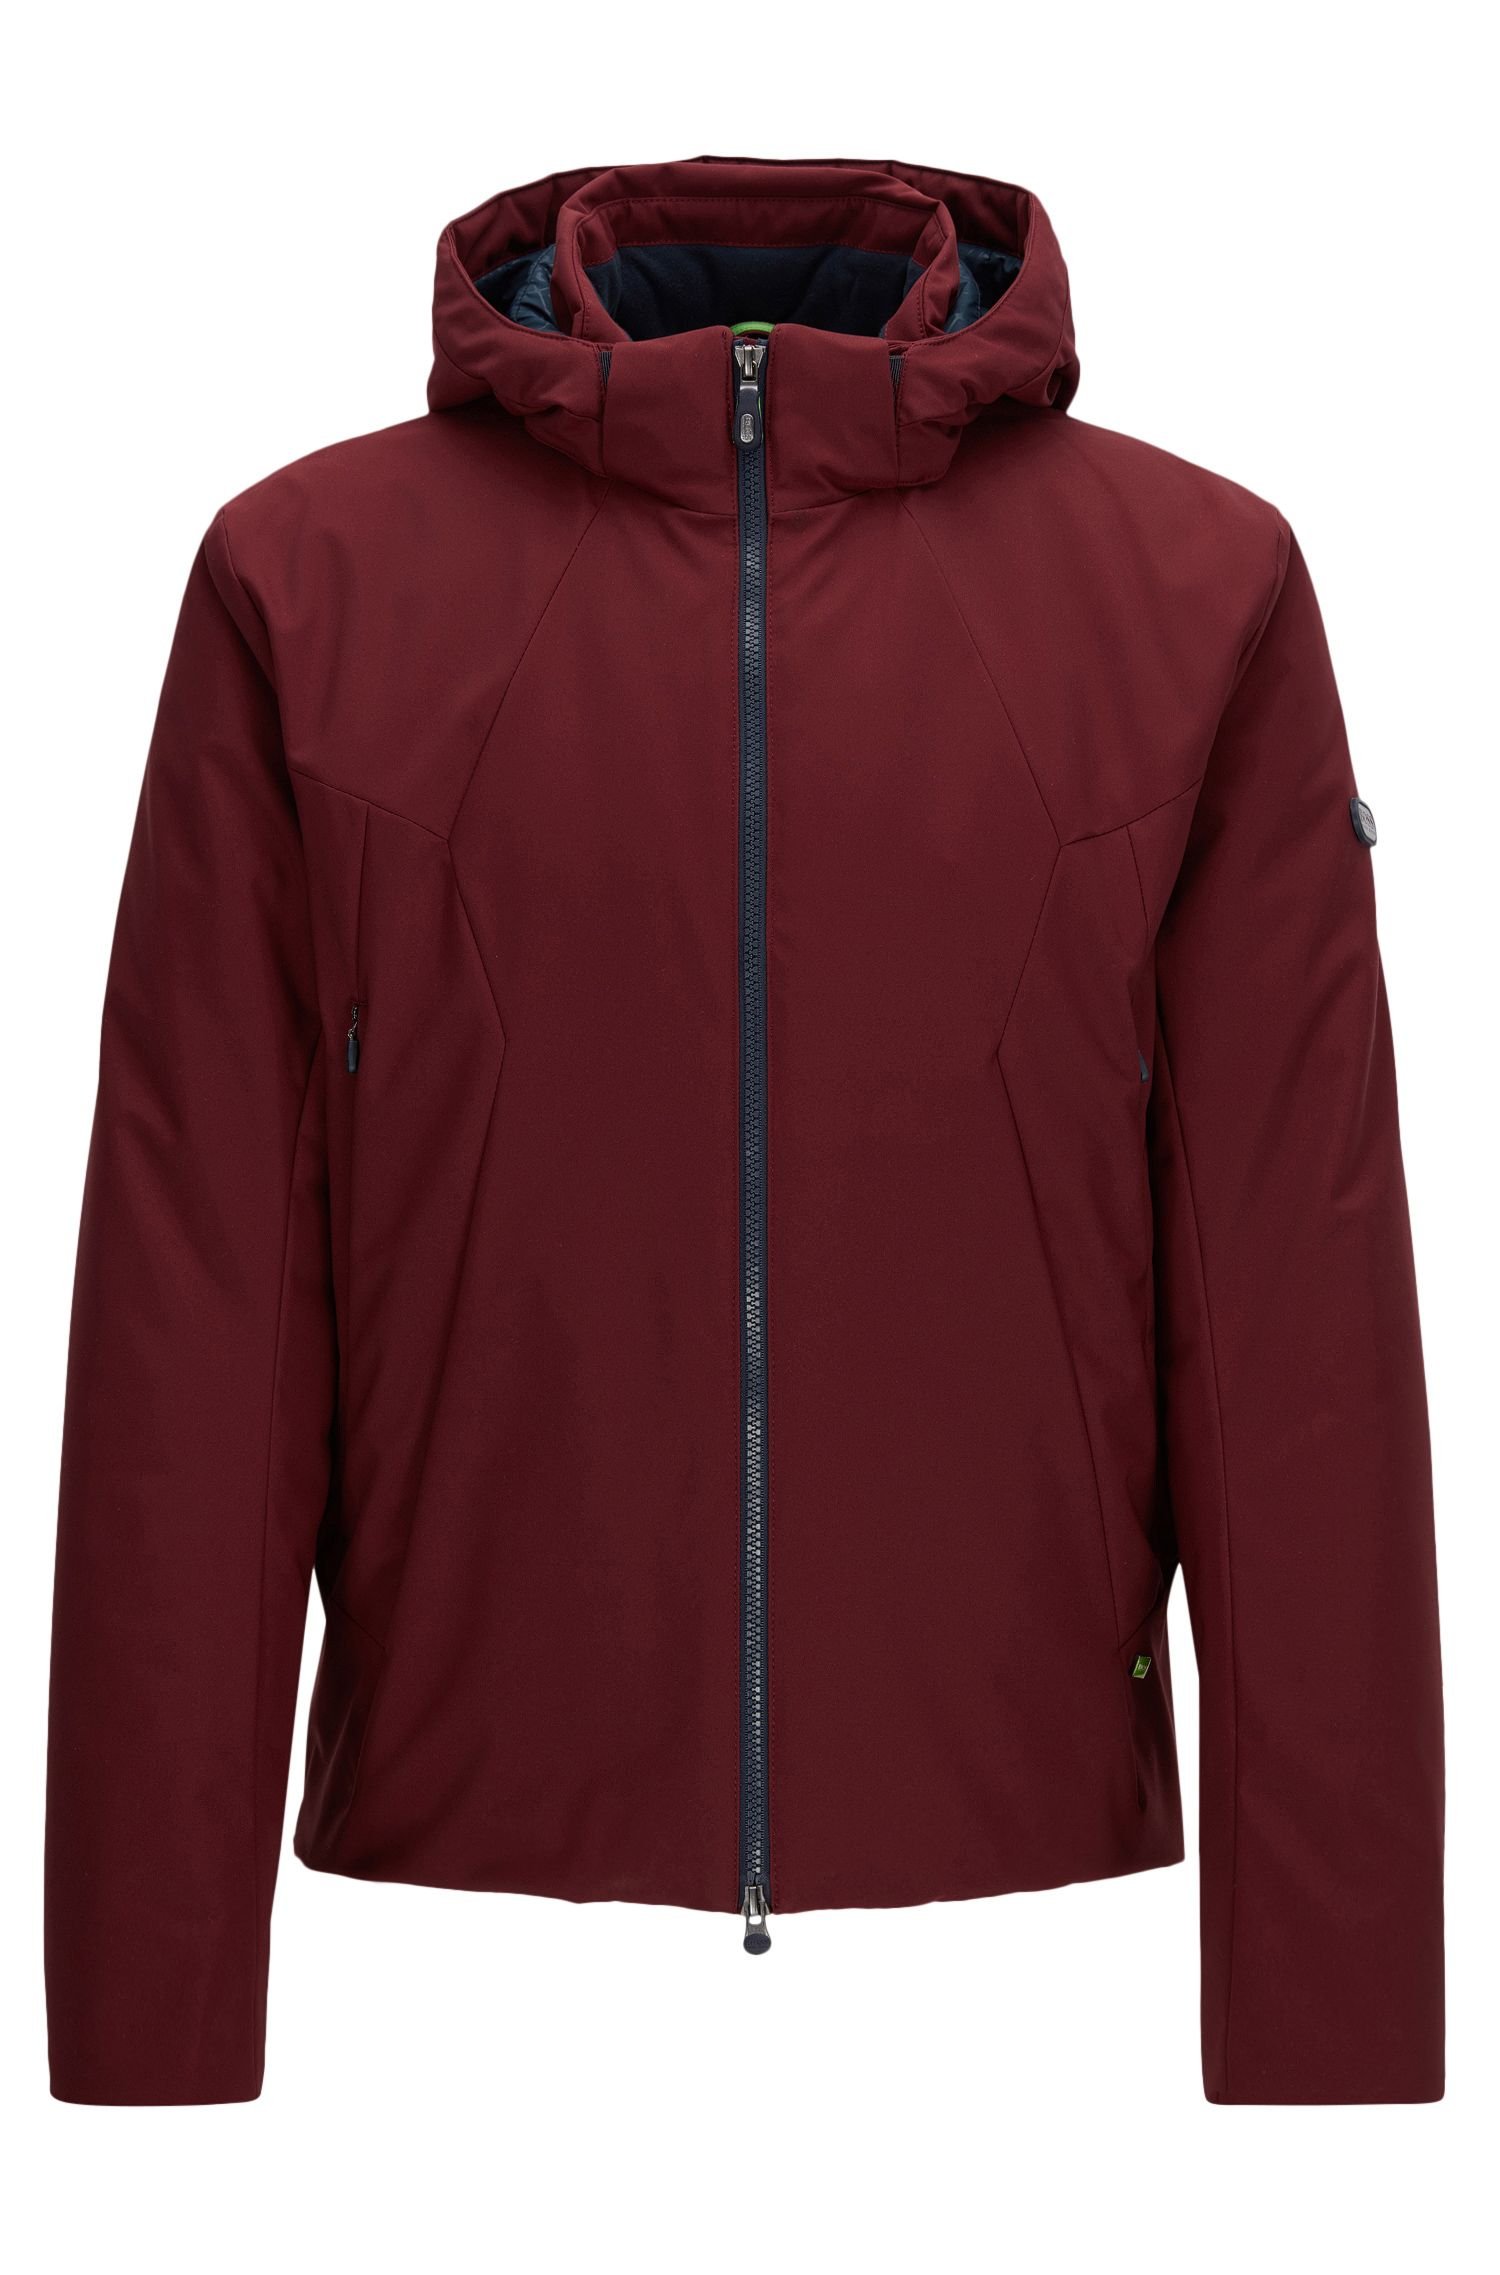 Regular-fit jacket in water-repellent fabric